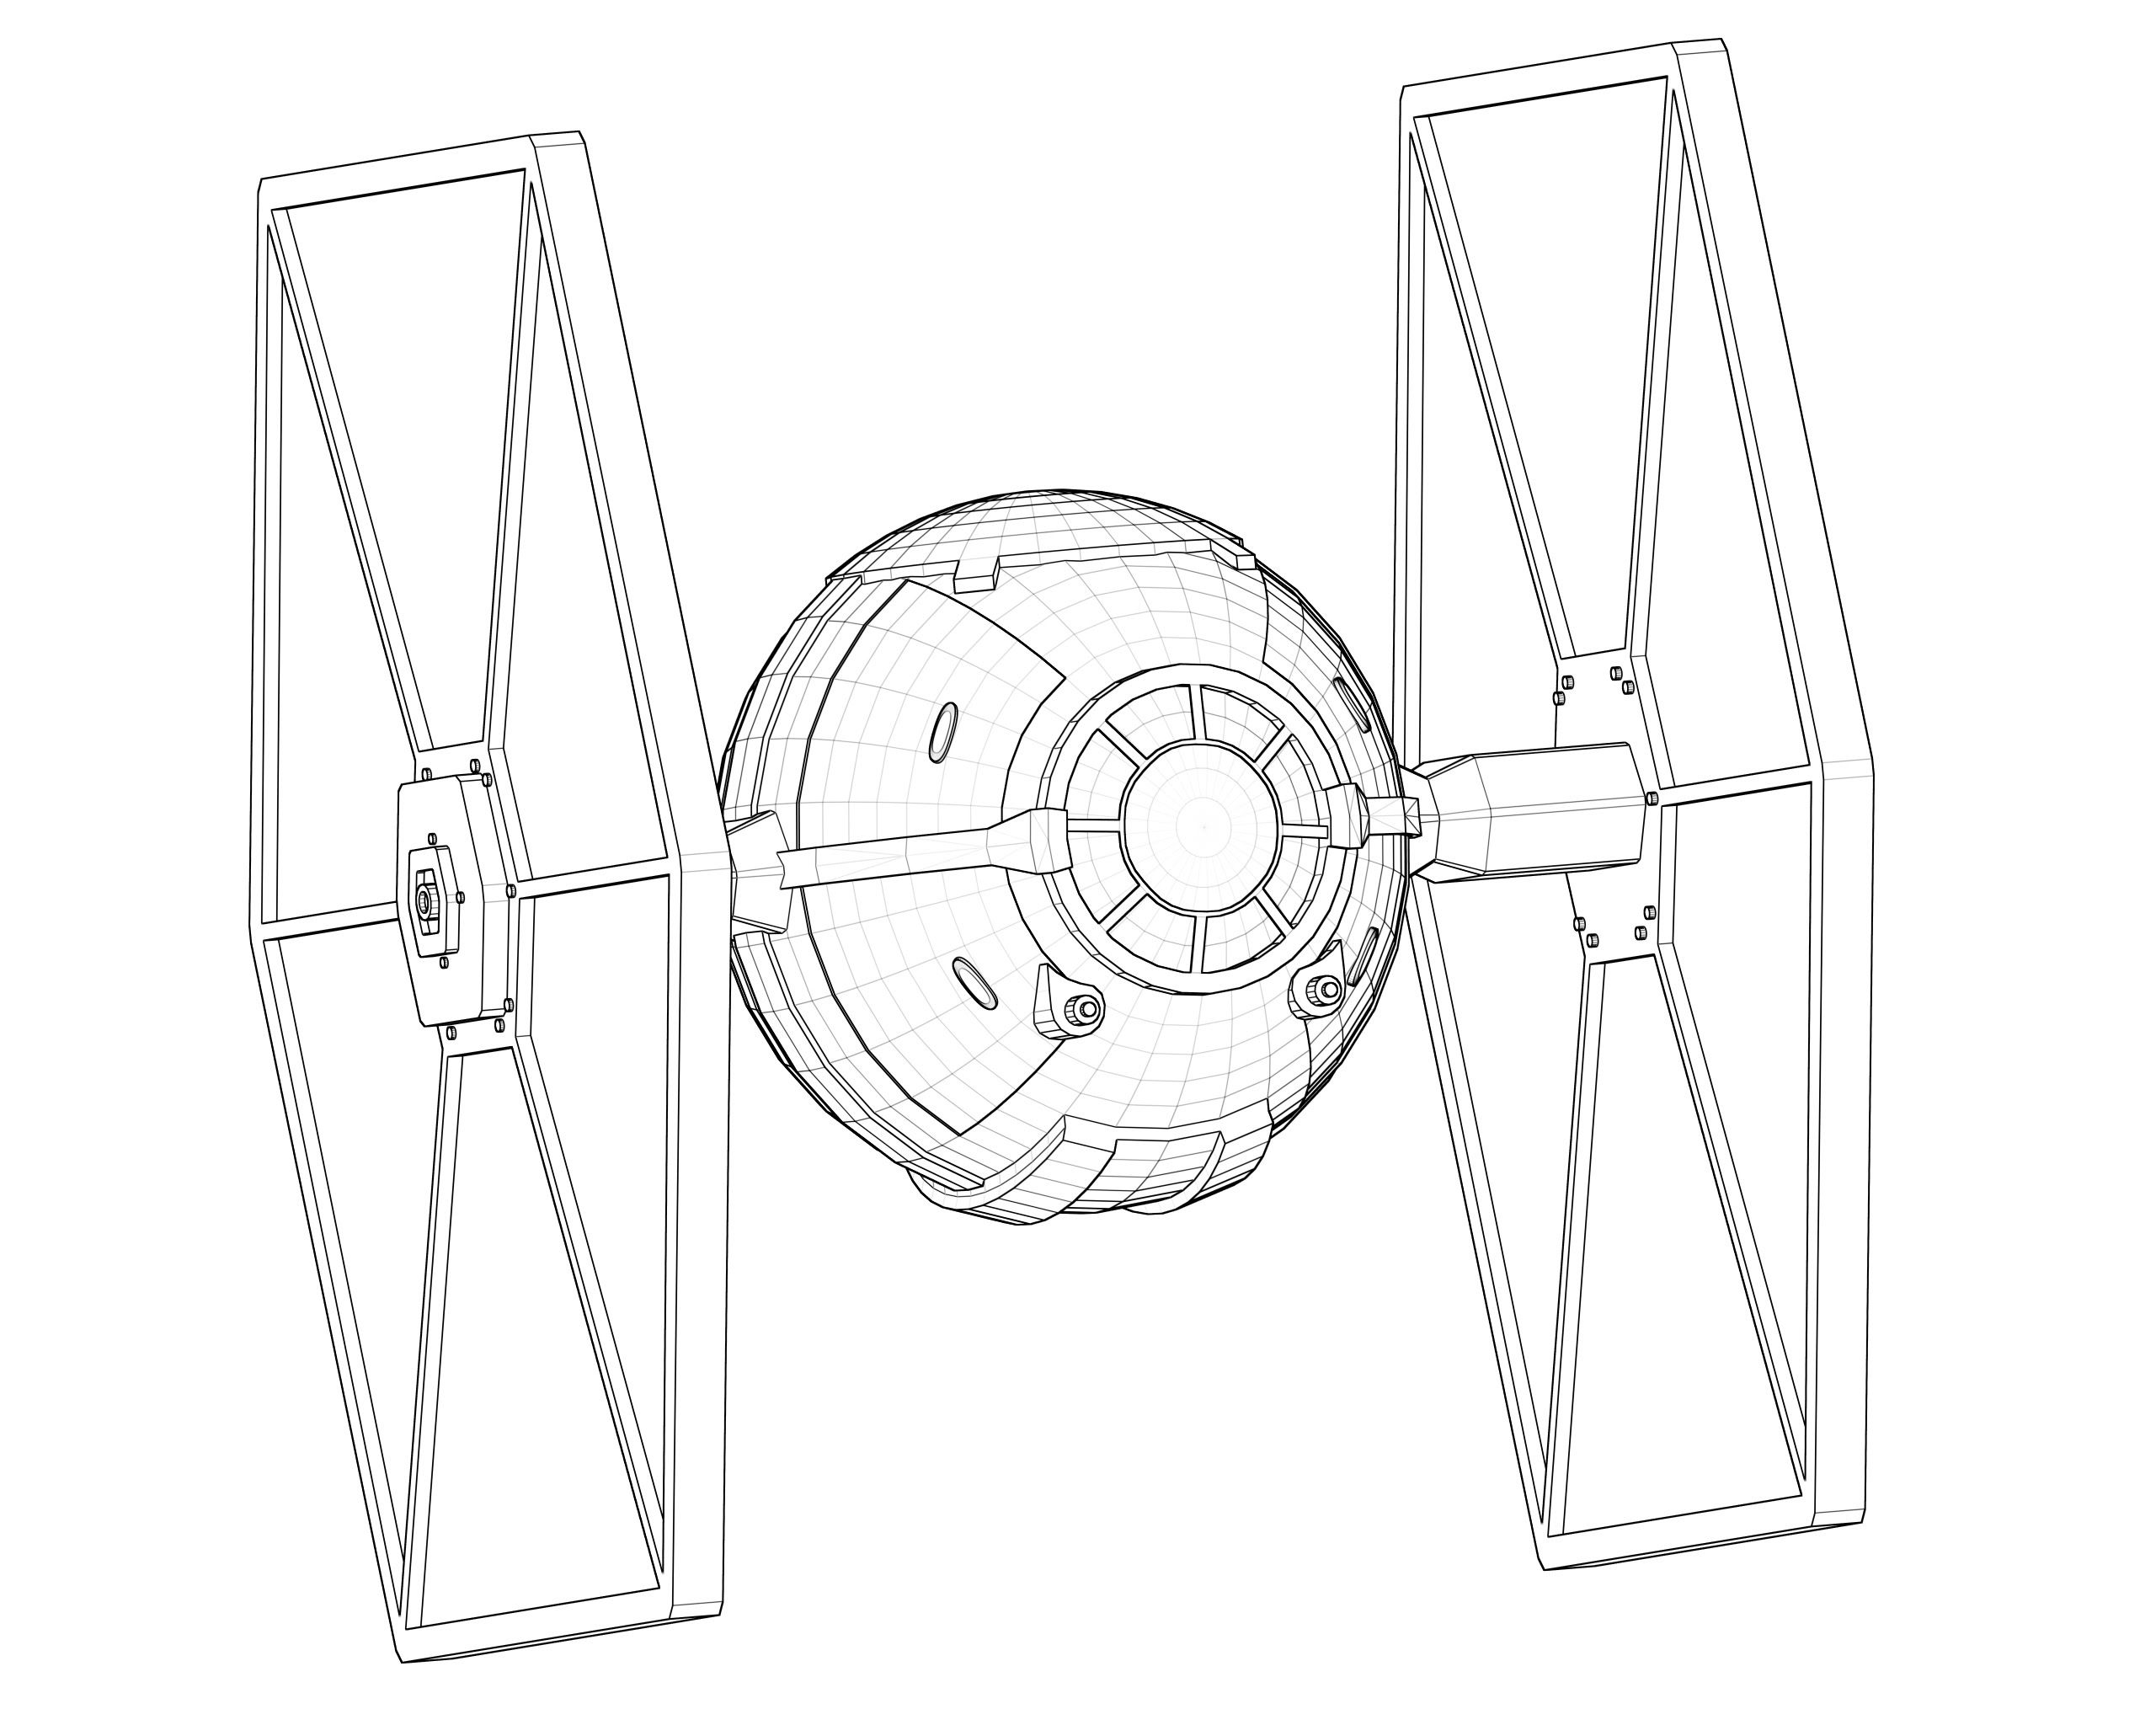 Lofted bed inspiration | Star wars coloring book, Tie fighter, Star wars  drawings